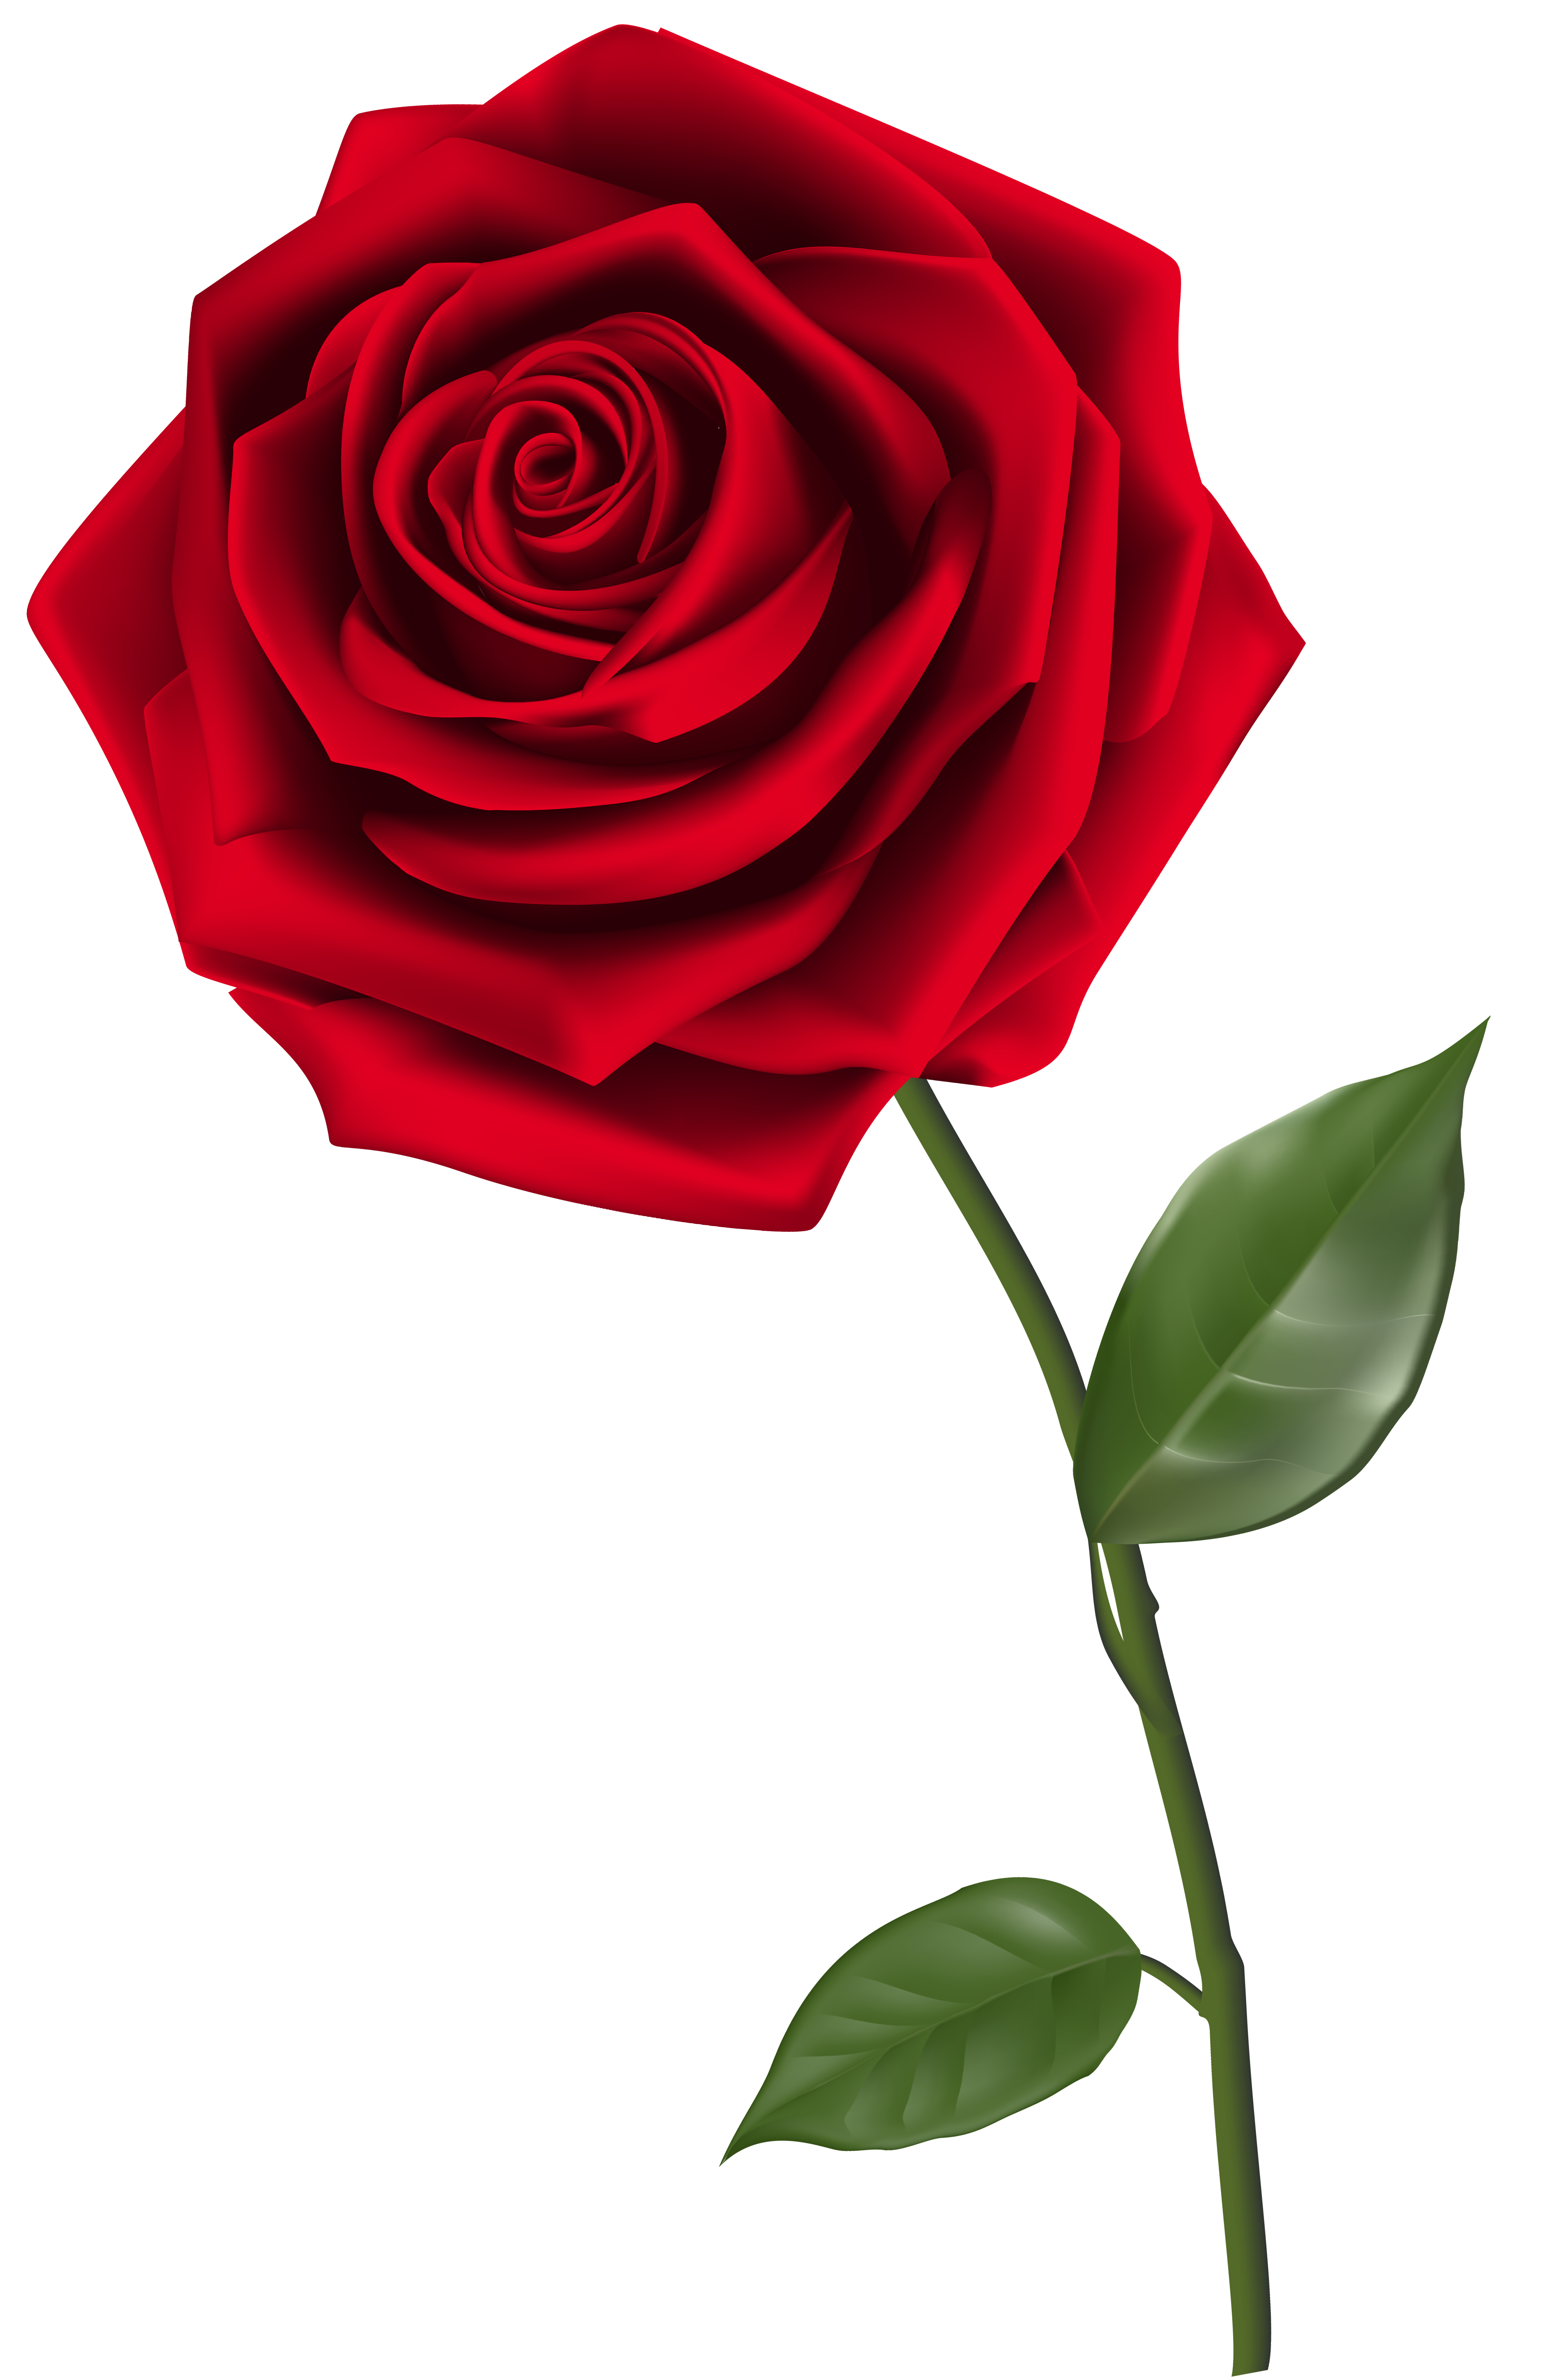 Single Red Rose PNG Clipart Image | Gallery Yopriceville - High ...